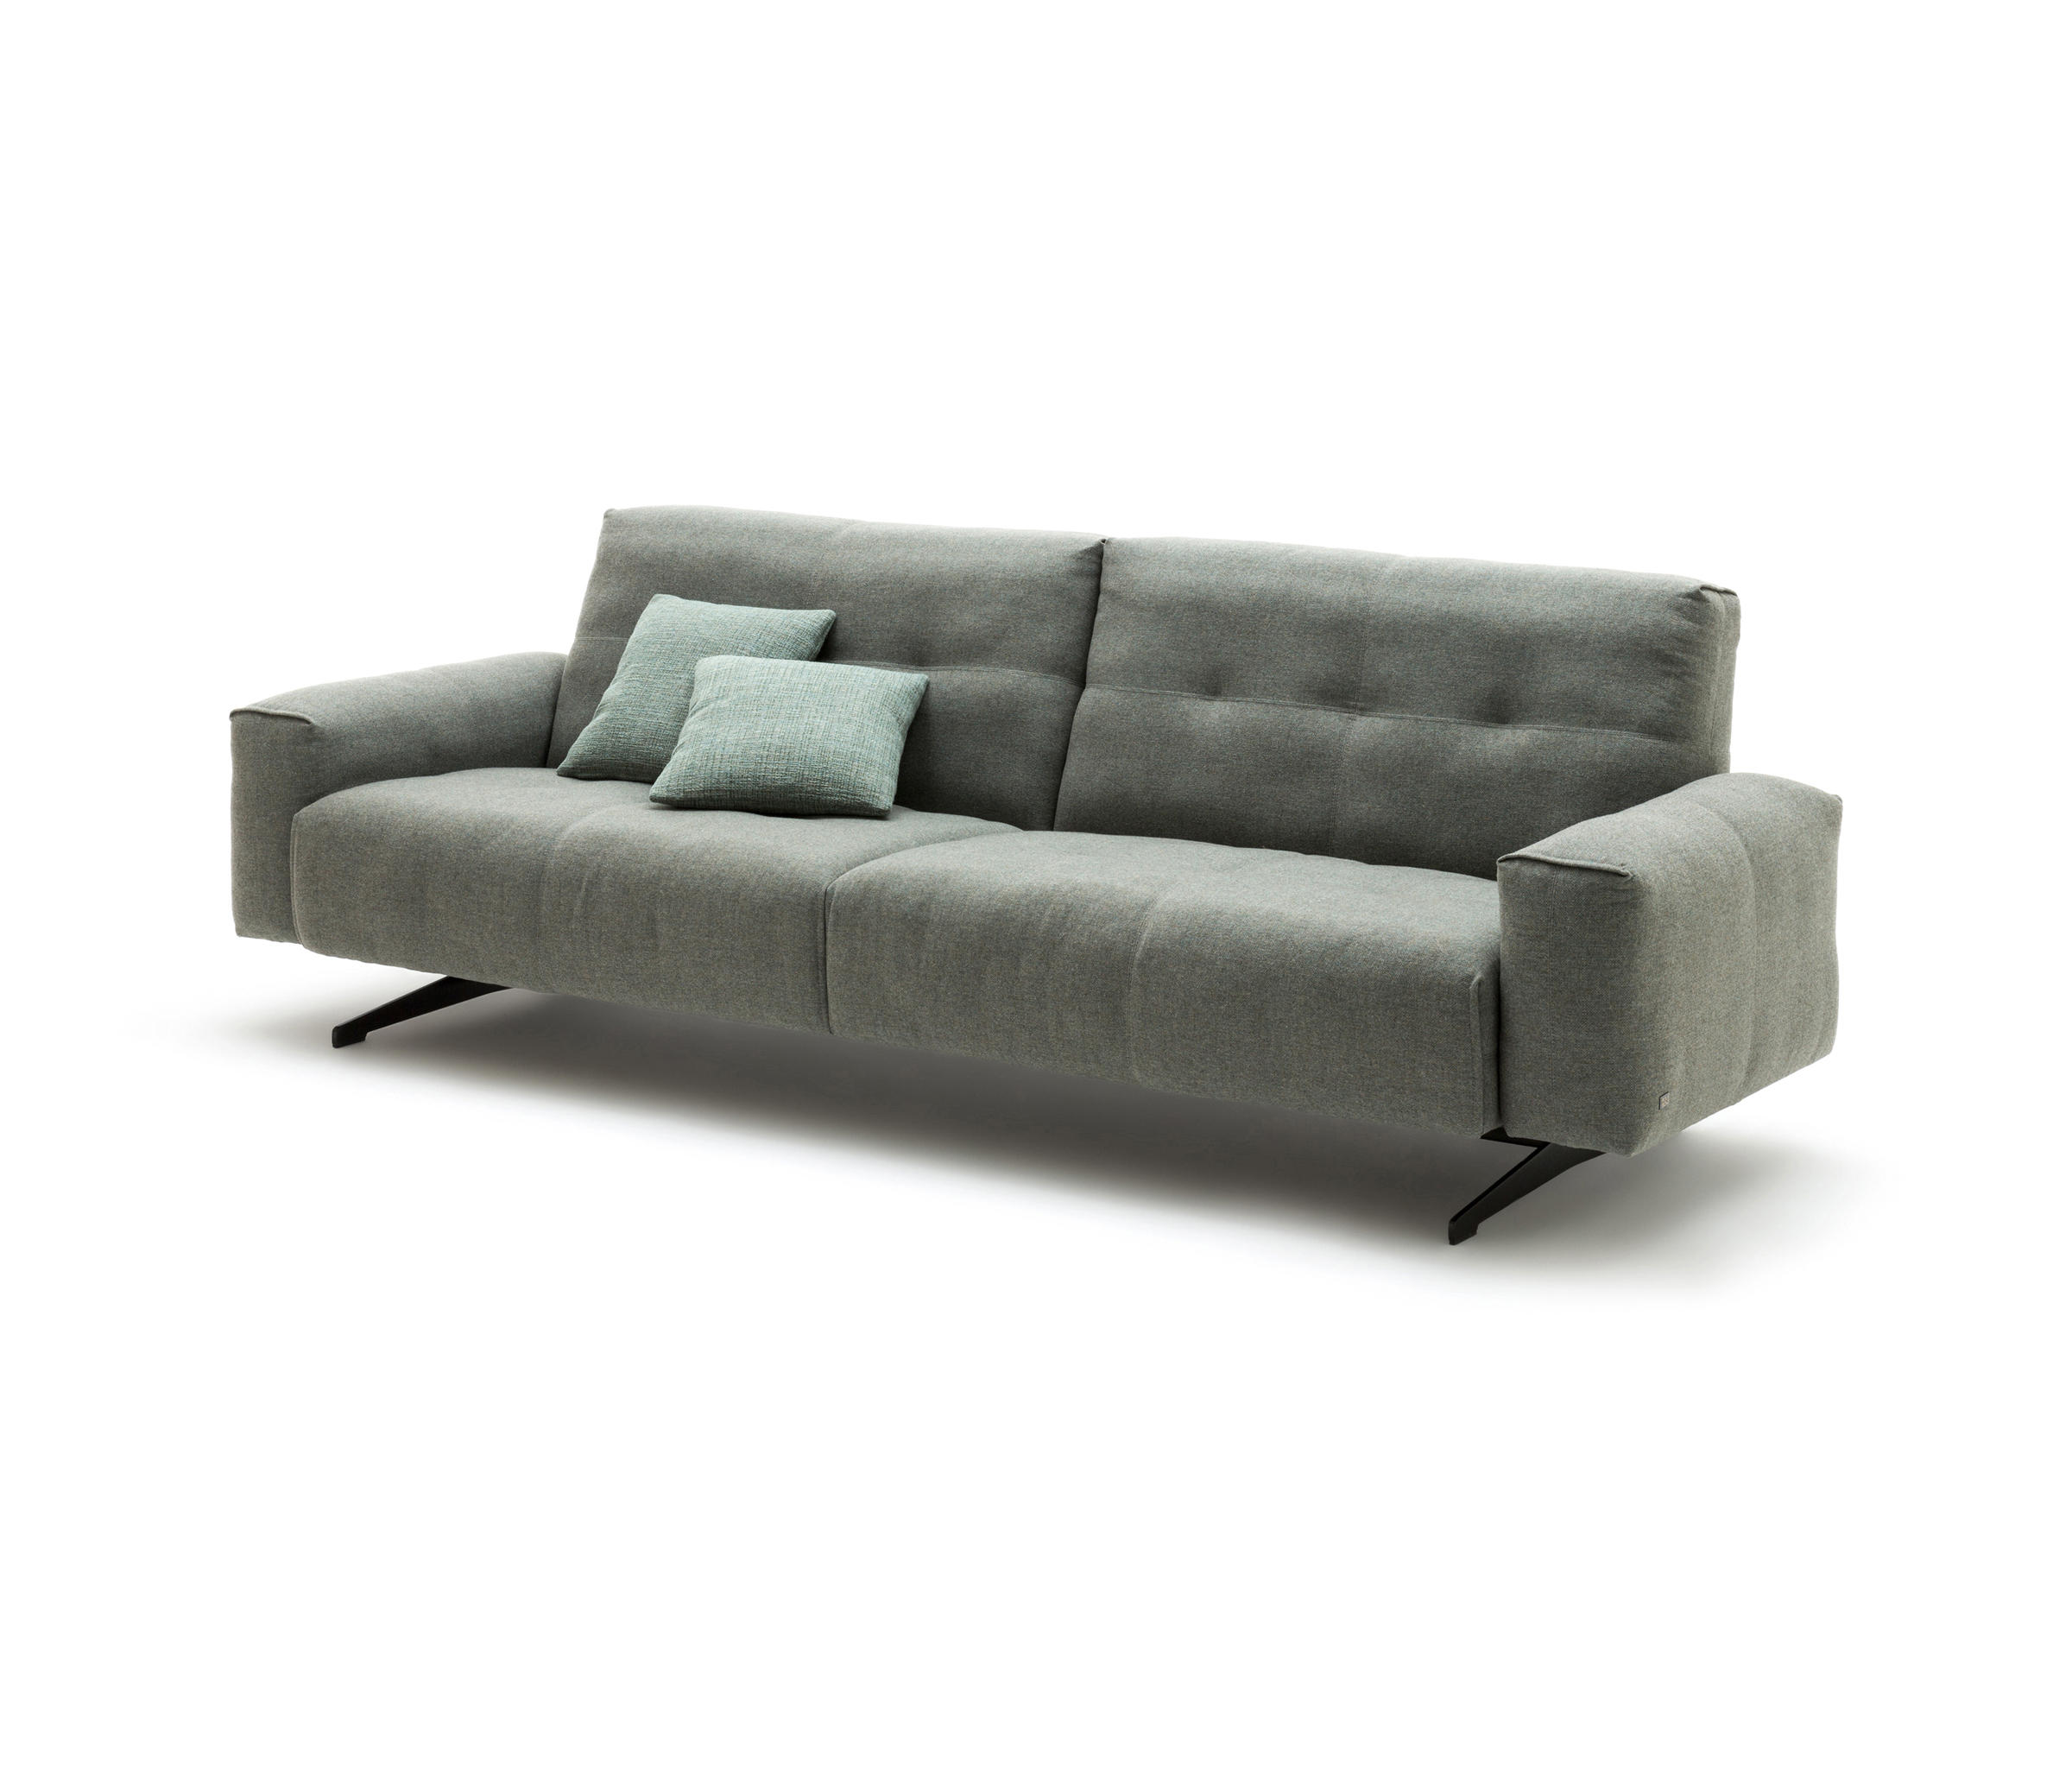 Bettsofa Rolf Benz Rolf Benz 50 Sofas From Rolf Benz Architonic